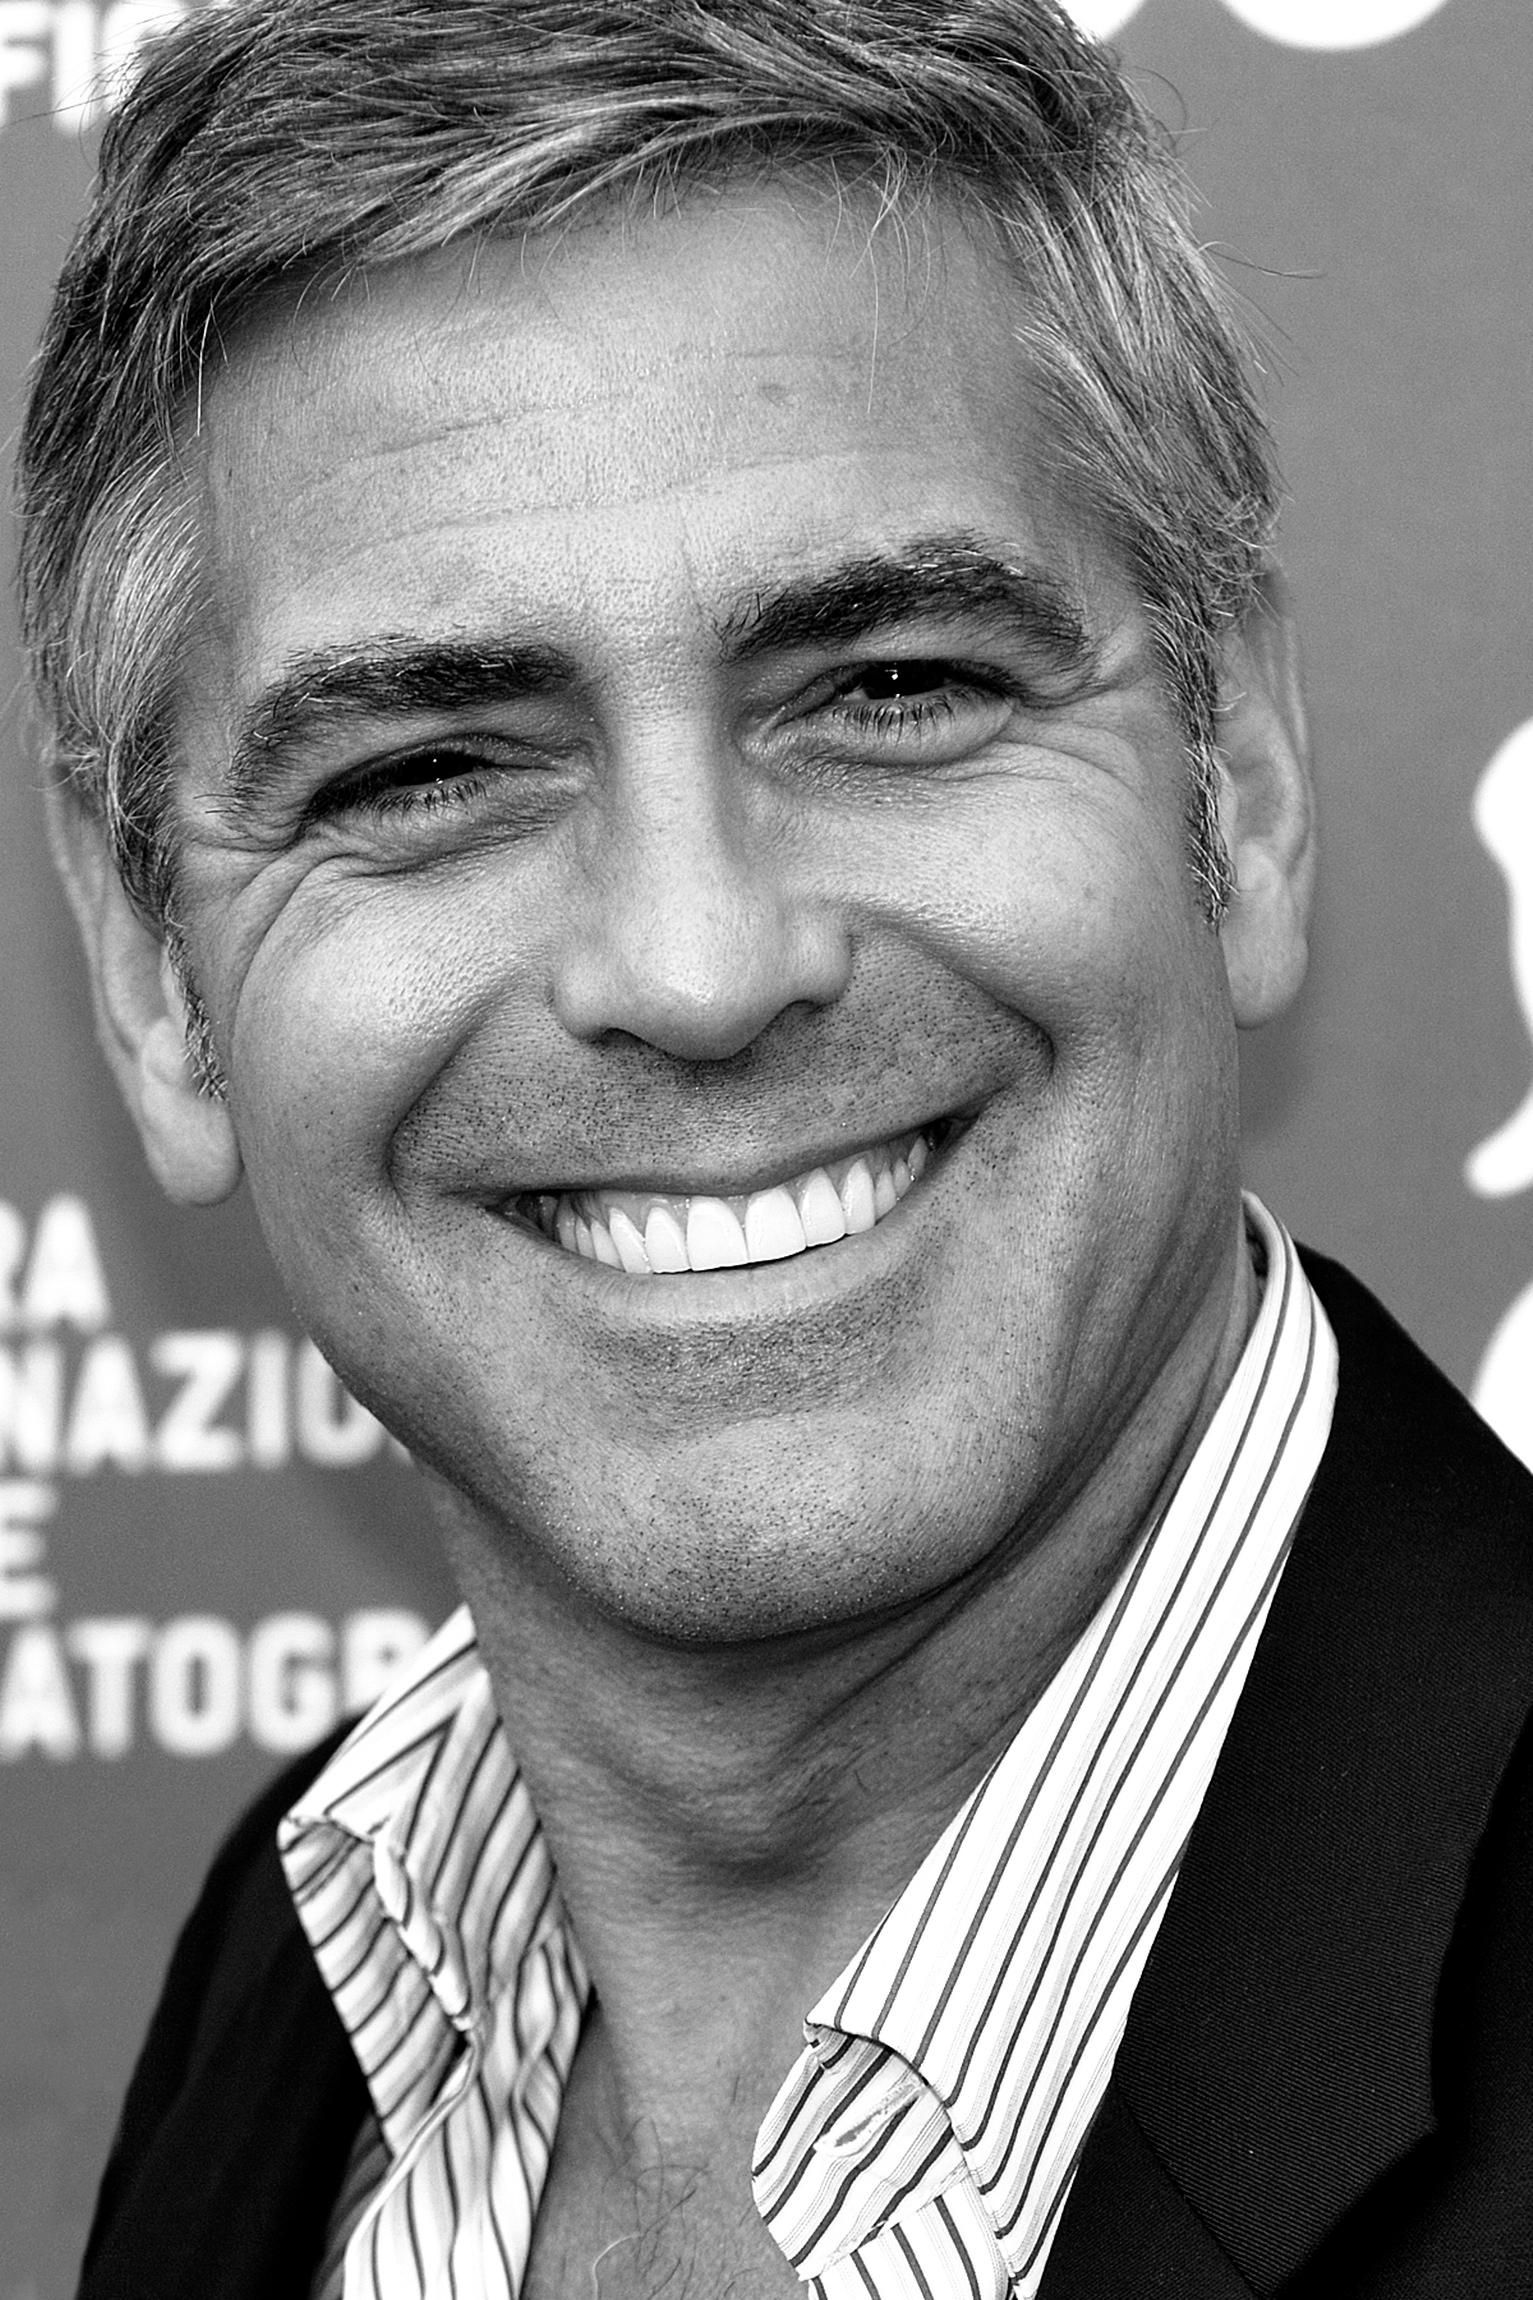 15  George Clooney who is a well known actor, is part of a